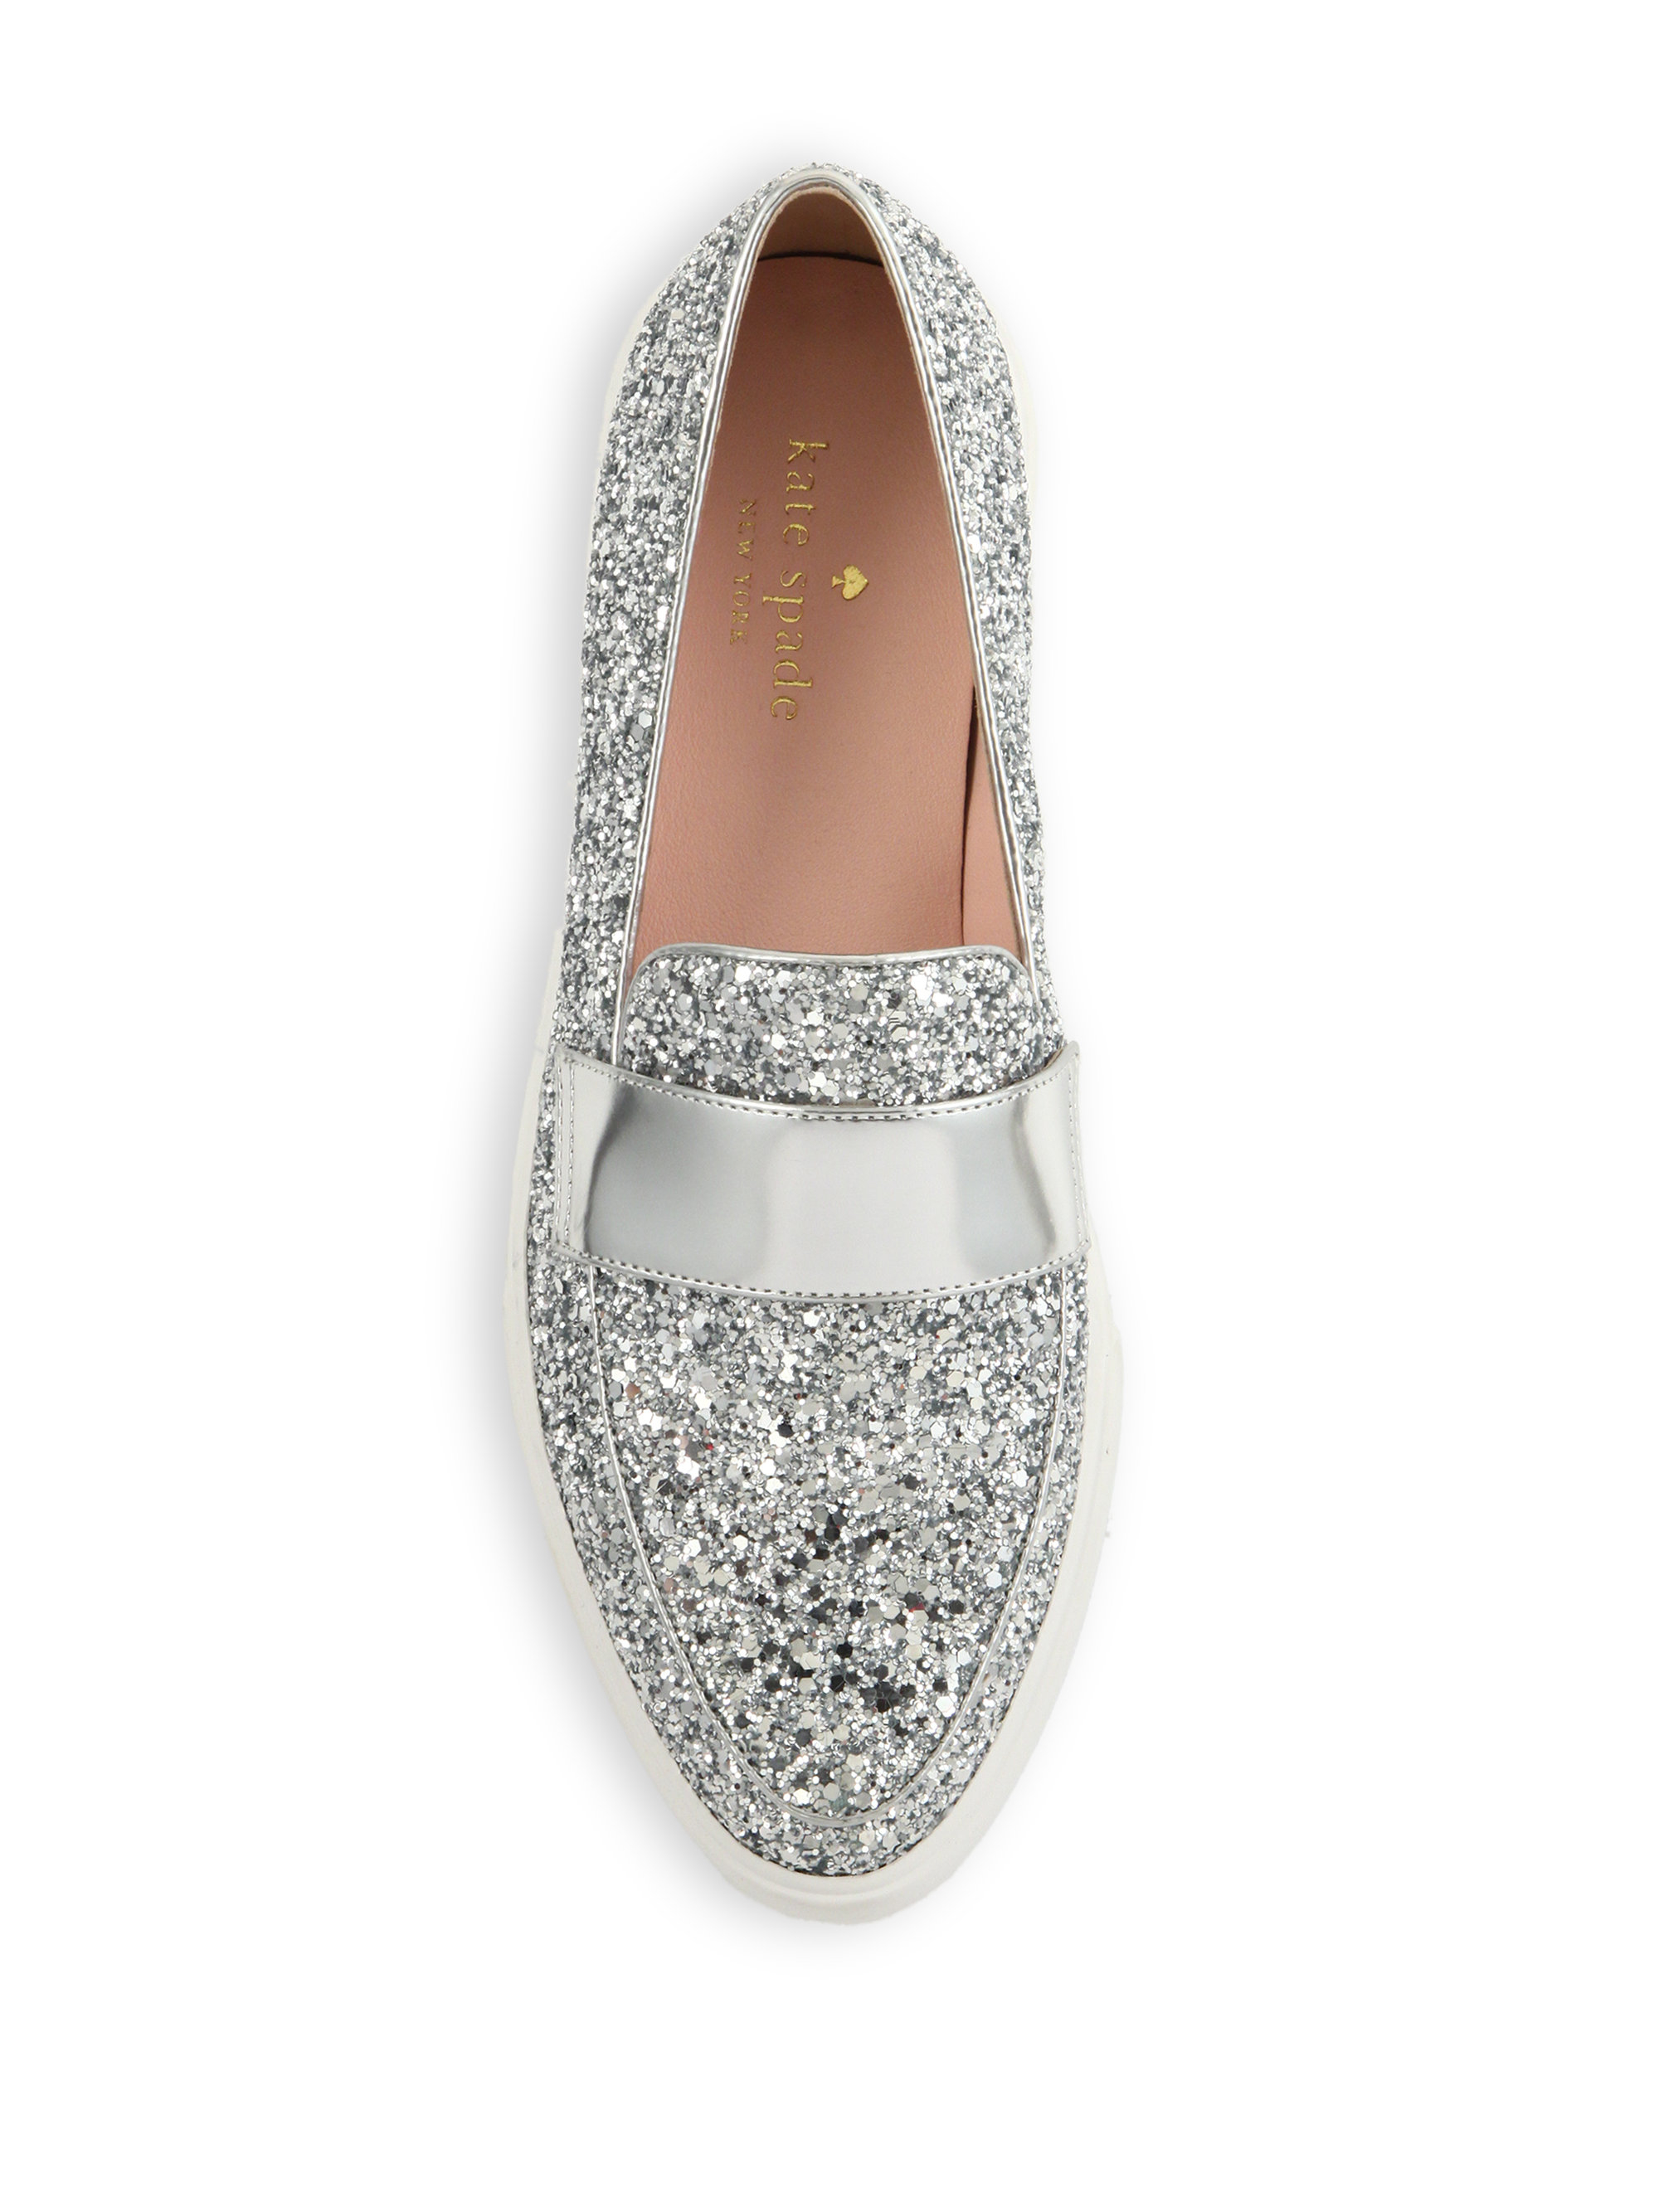 7d55fea53f75 Lyst - Kate Spade Clover Glittered Leather Slip-on Sneakers in Metallic